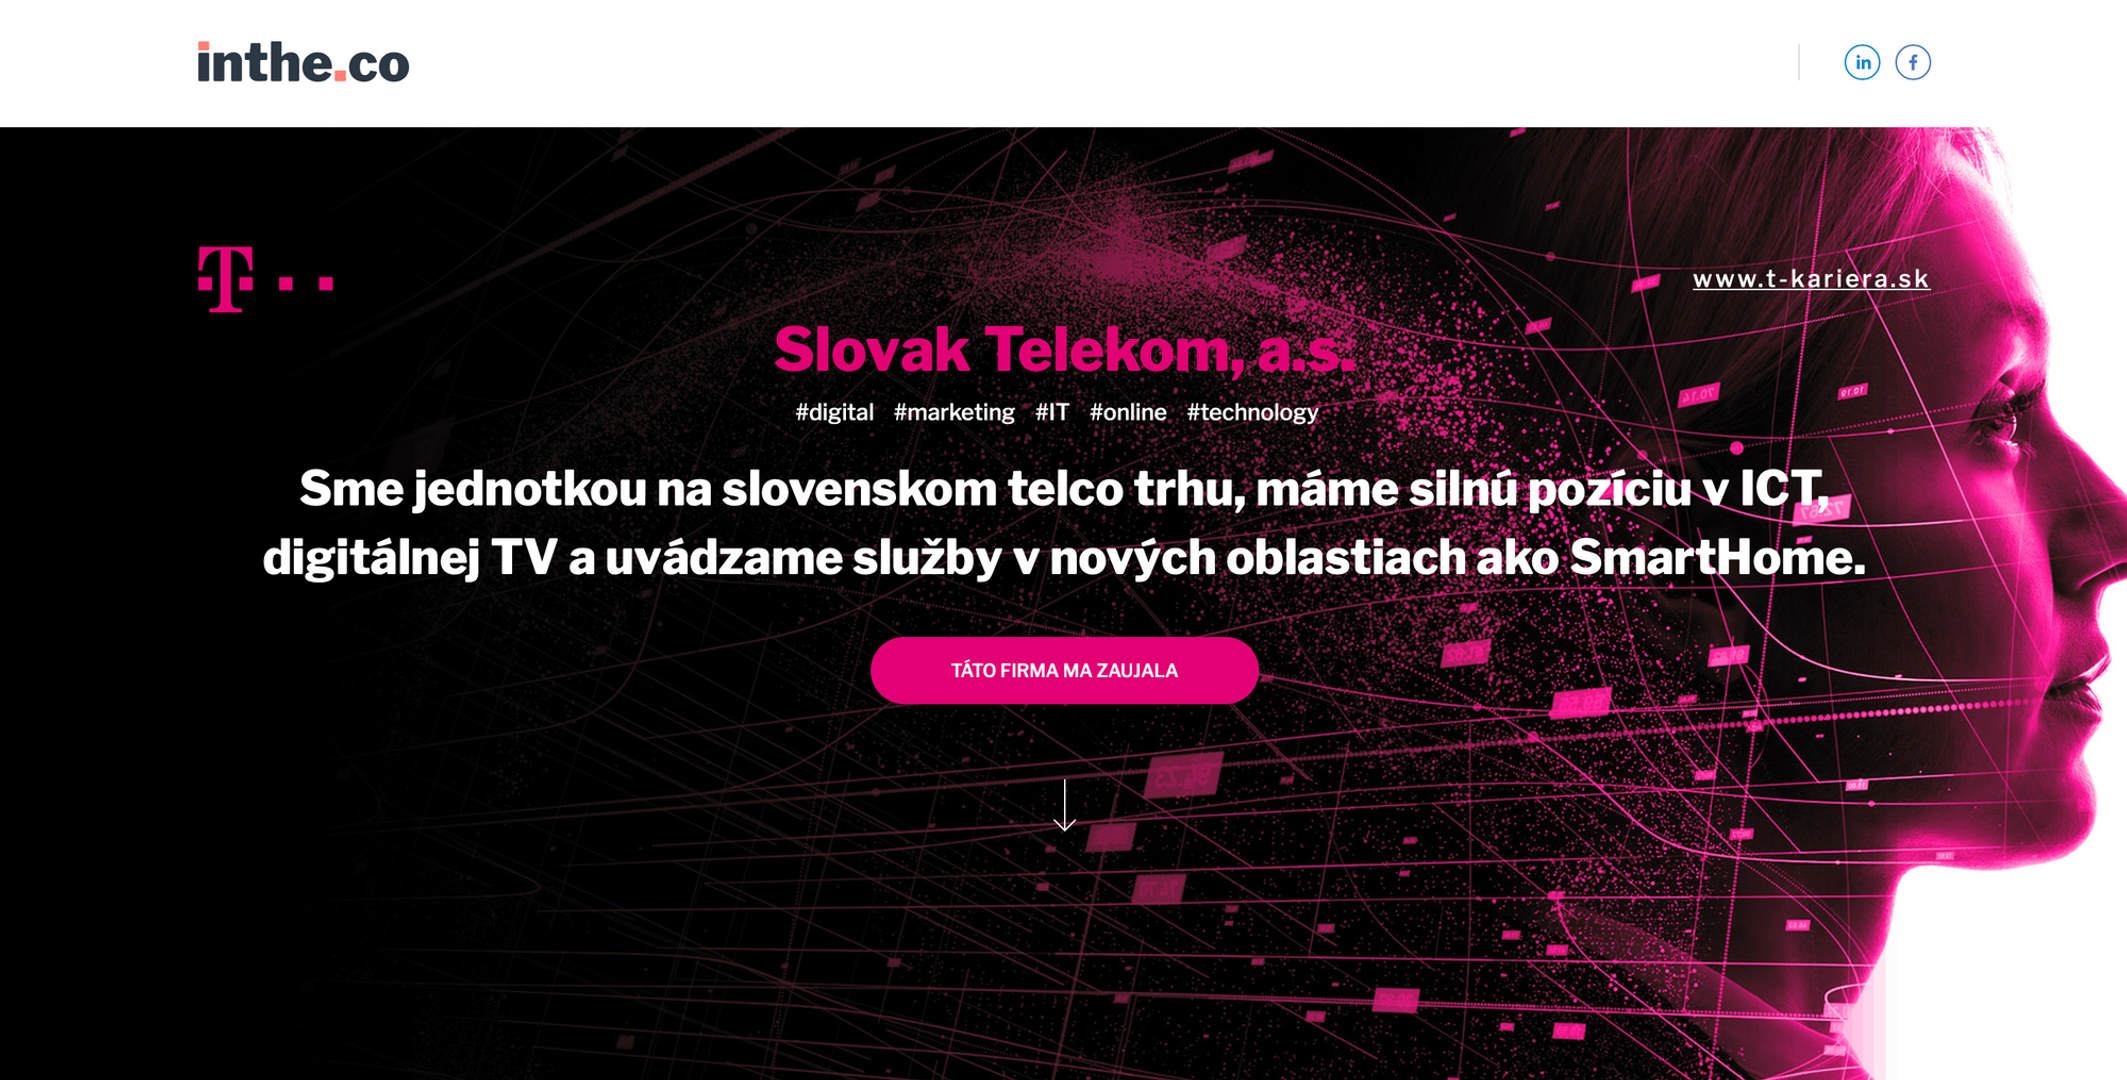 Telekom - carreer website